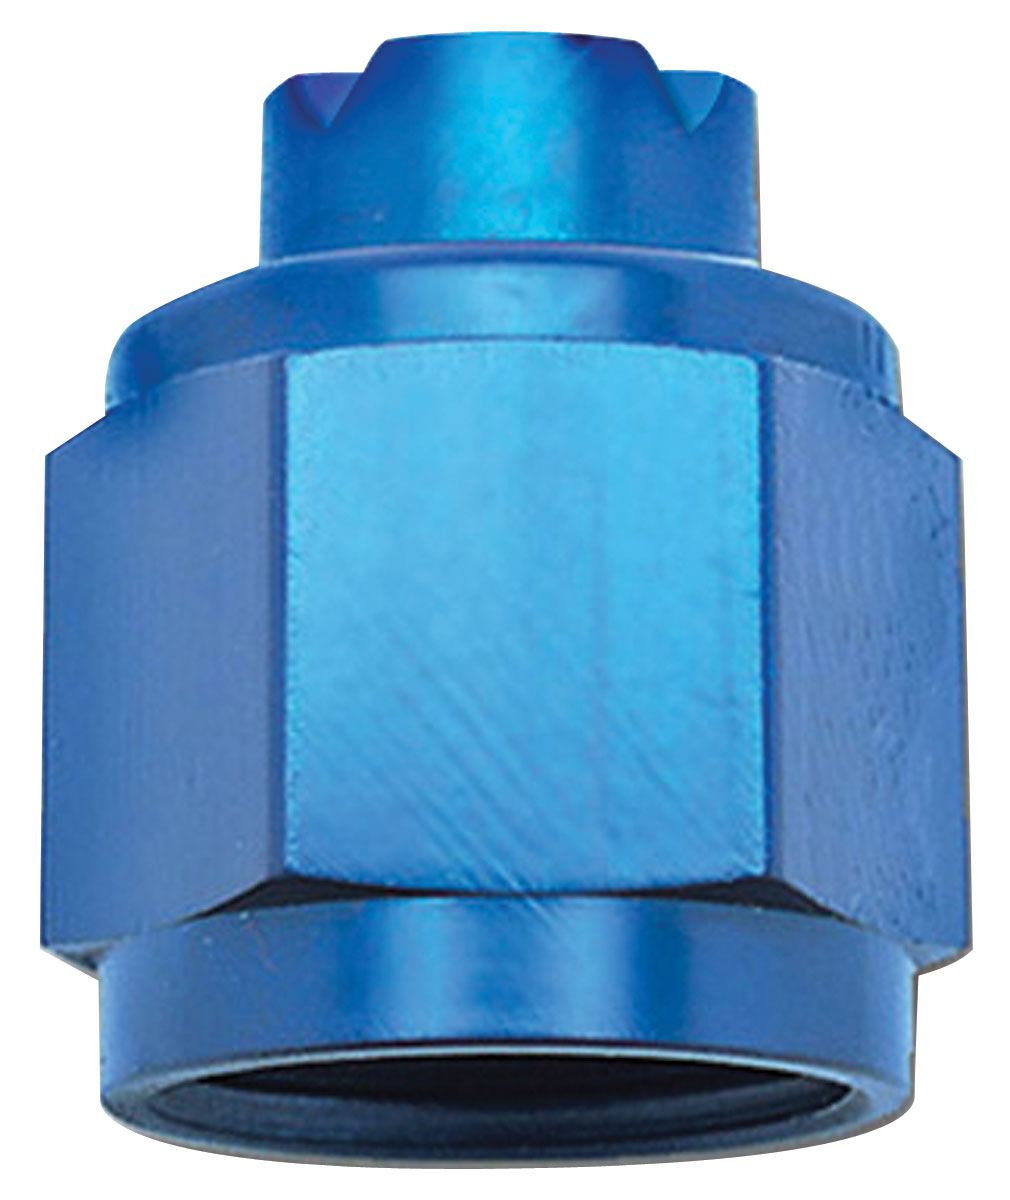 Photo of Adapter Fittings, Russell An Flare Cap -6 AN